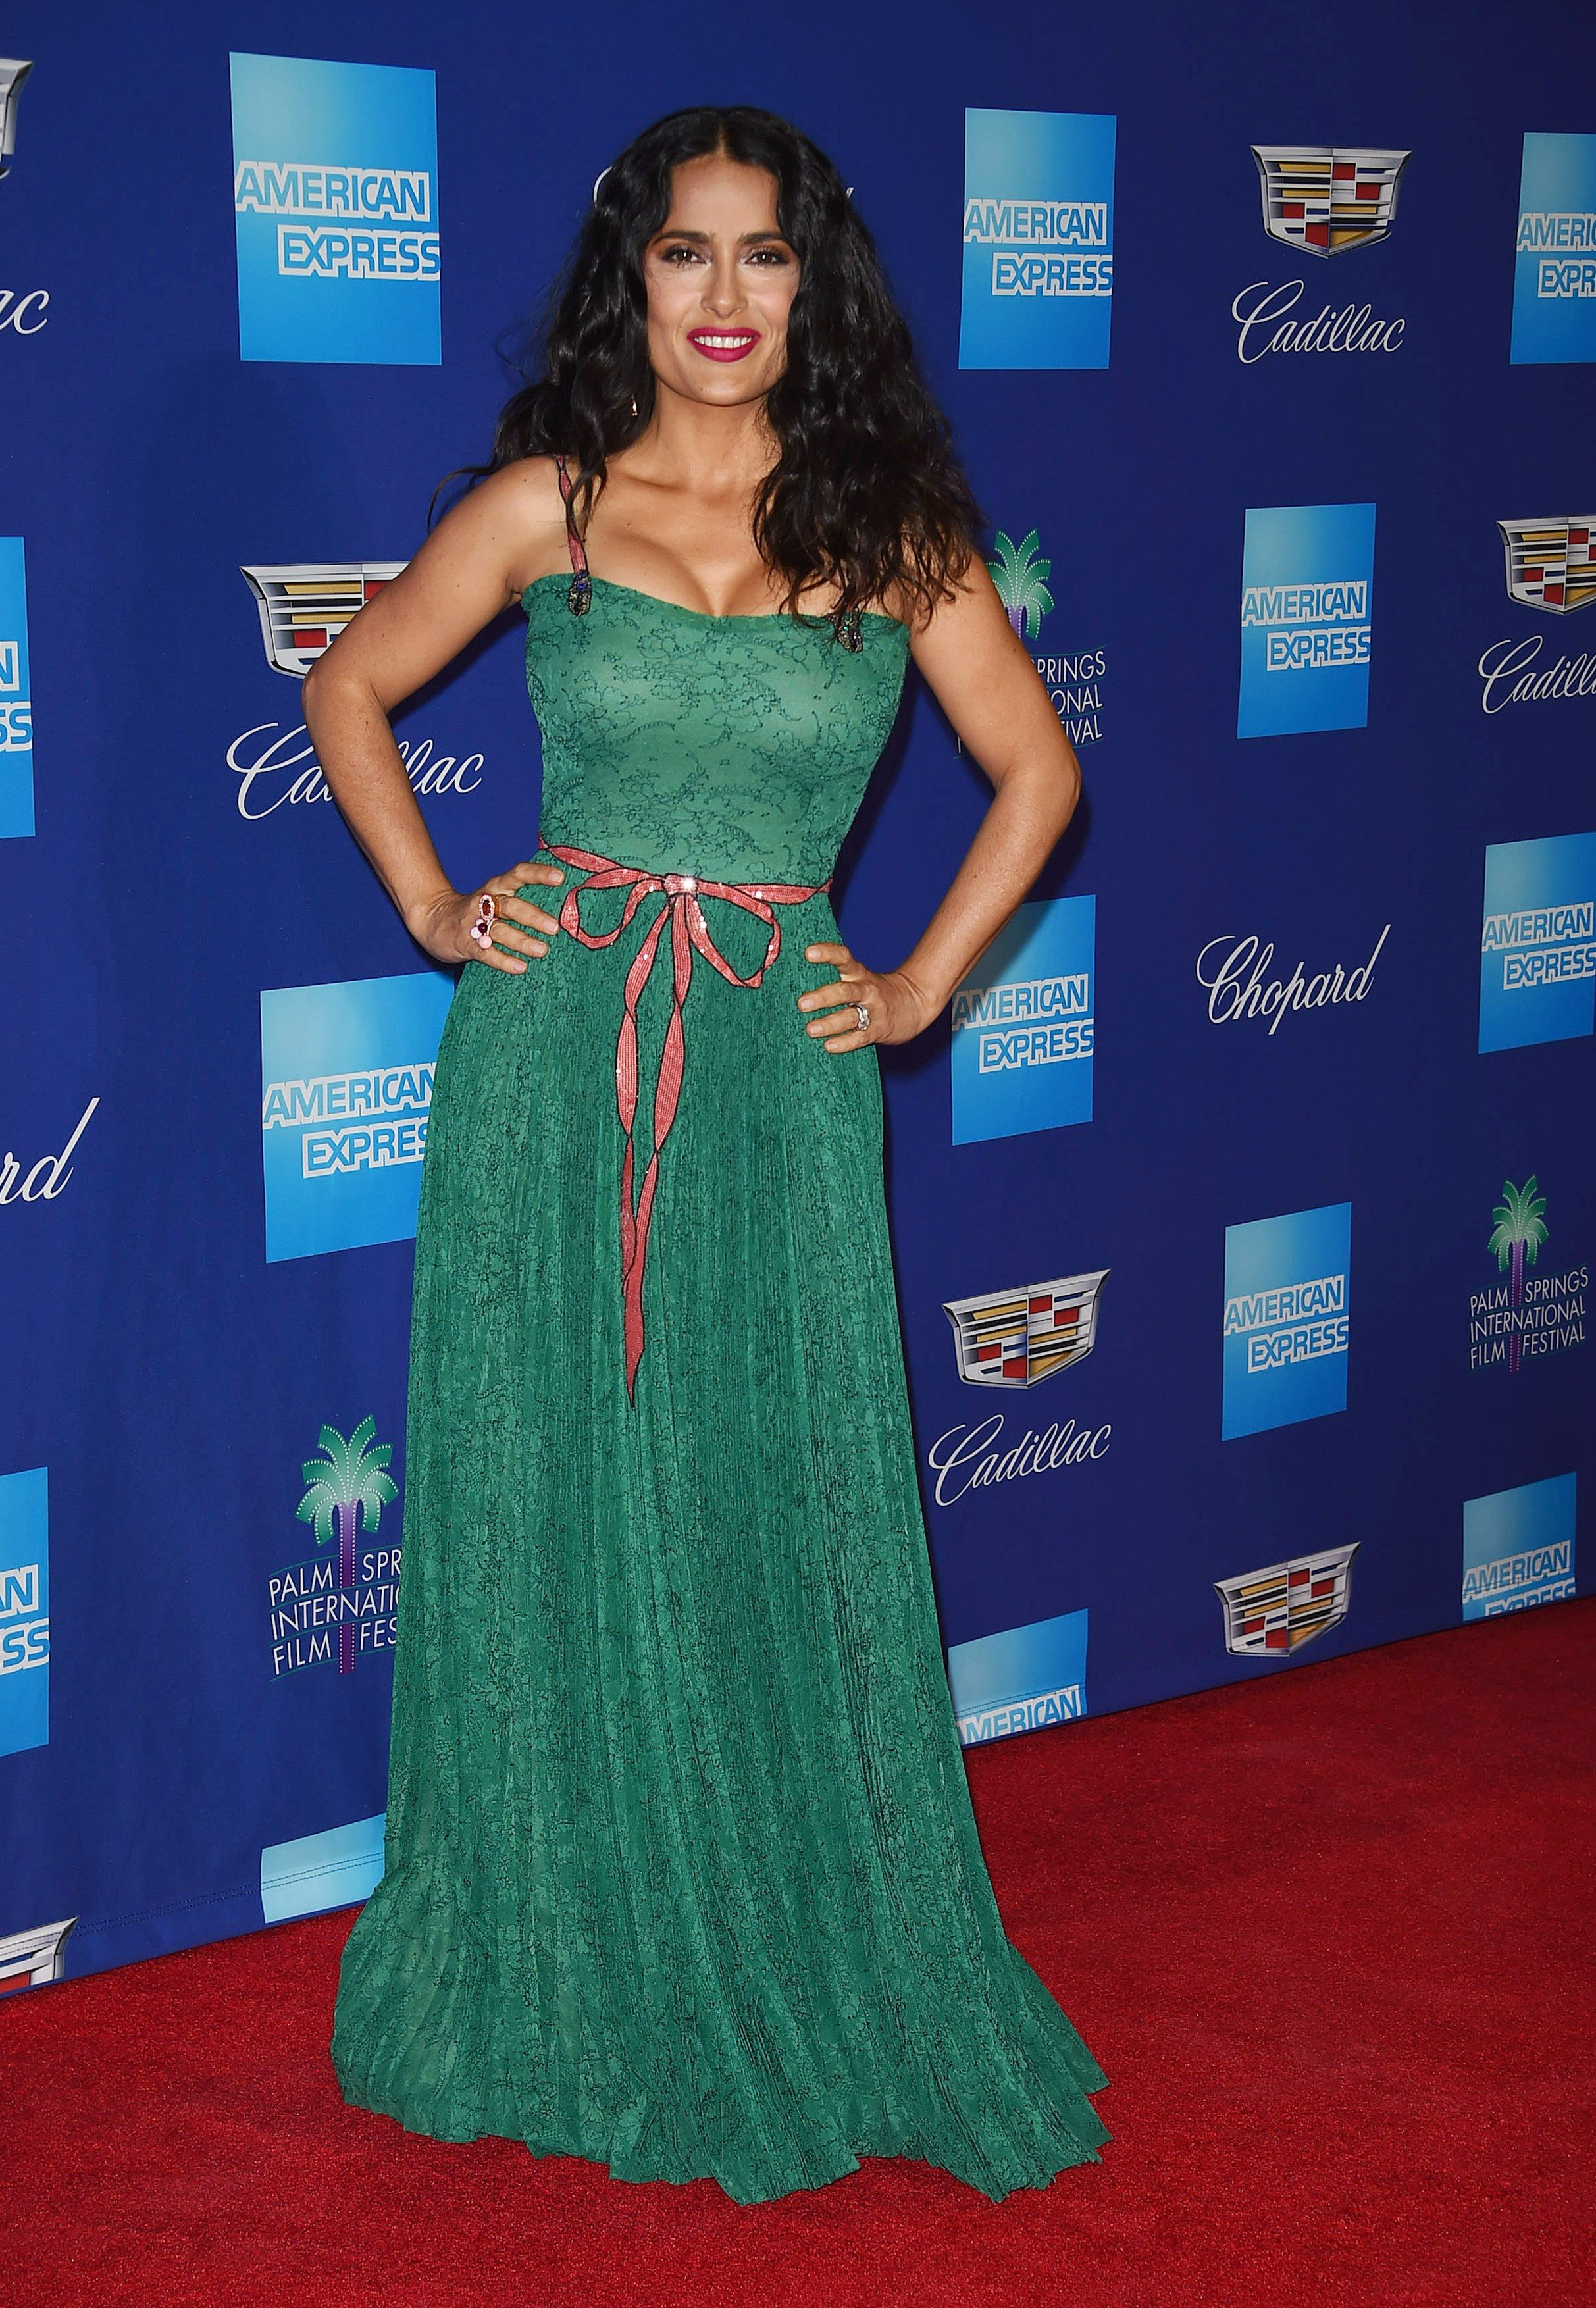 , Palm Springs, CA - 01/02/18 - The 29th Palm Springs International Film Festival Awards Gala -PICTURED: Salma Hayek -, Image: 359090548, License: Rights-managed, Restrictions: , Model Release: no, Credit line: Profimedia, INSTAR Images